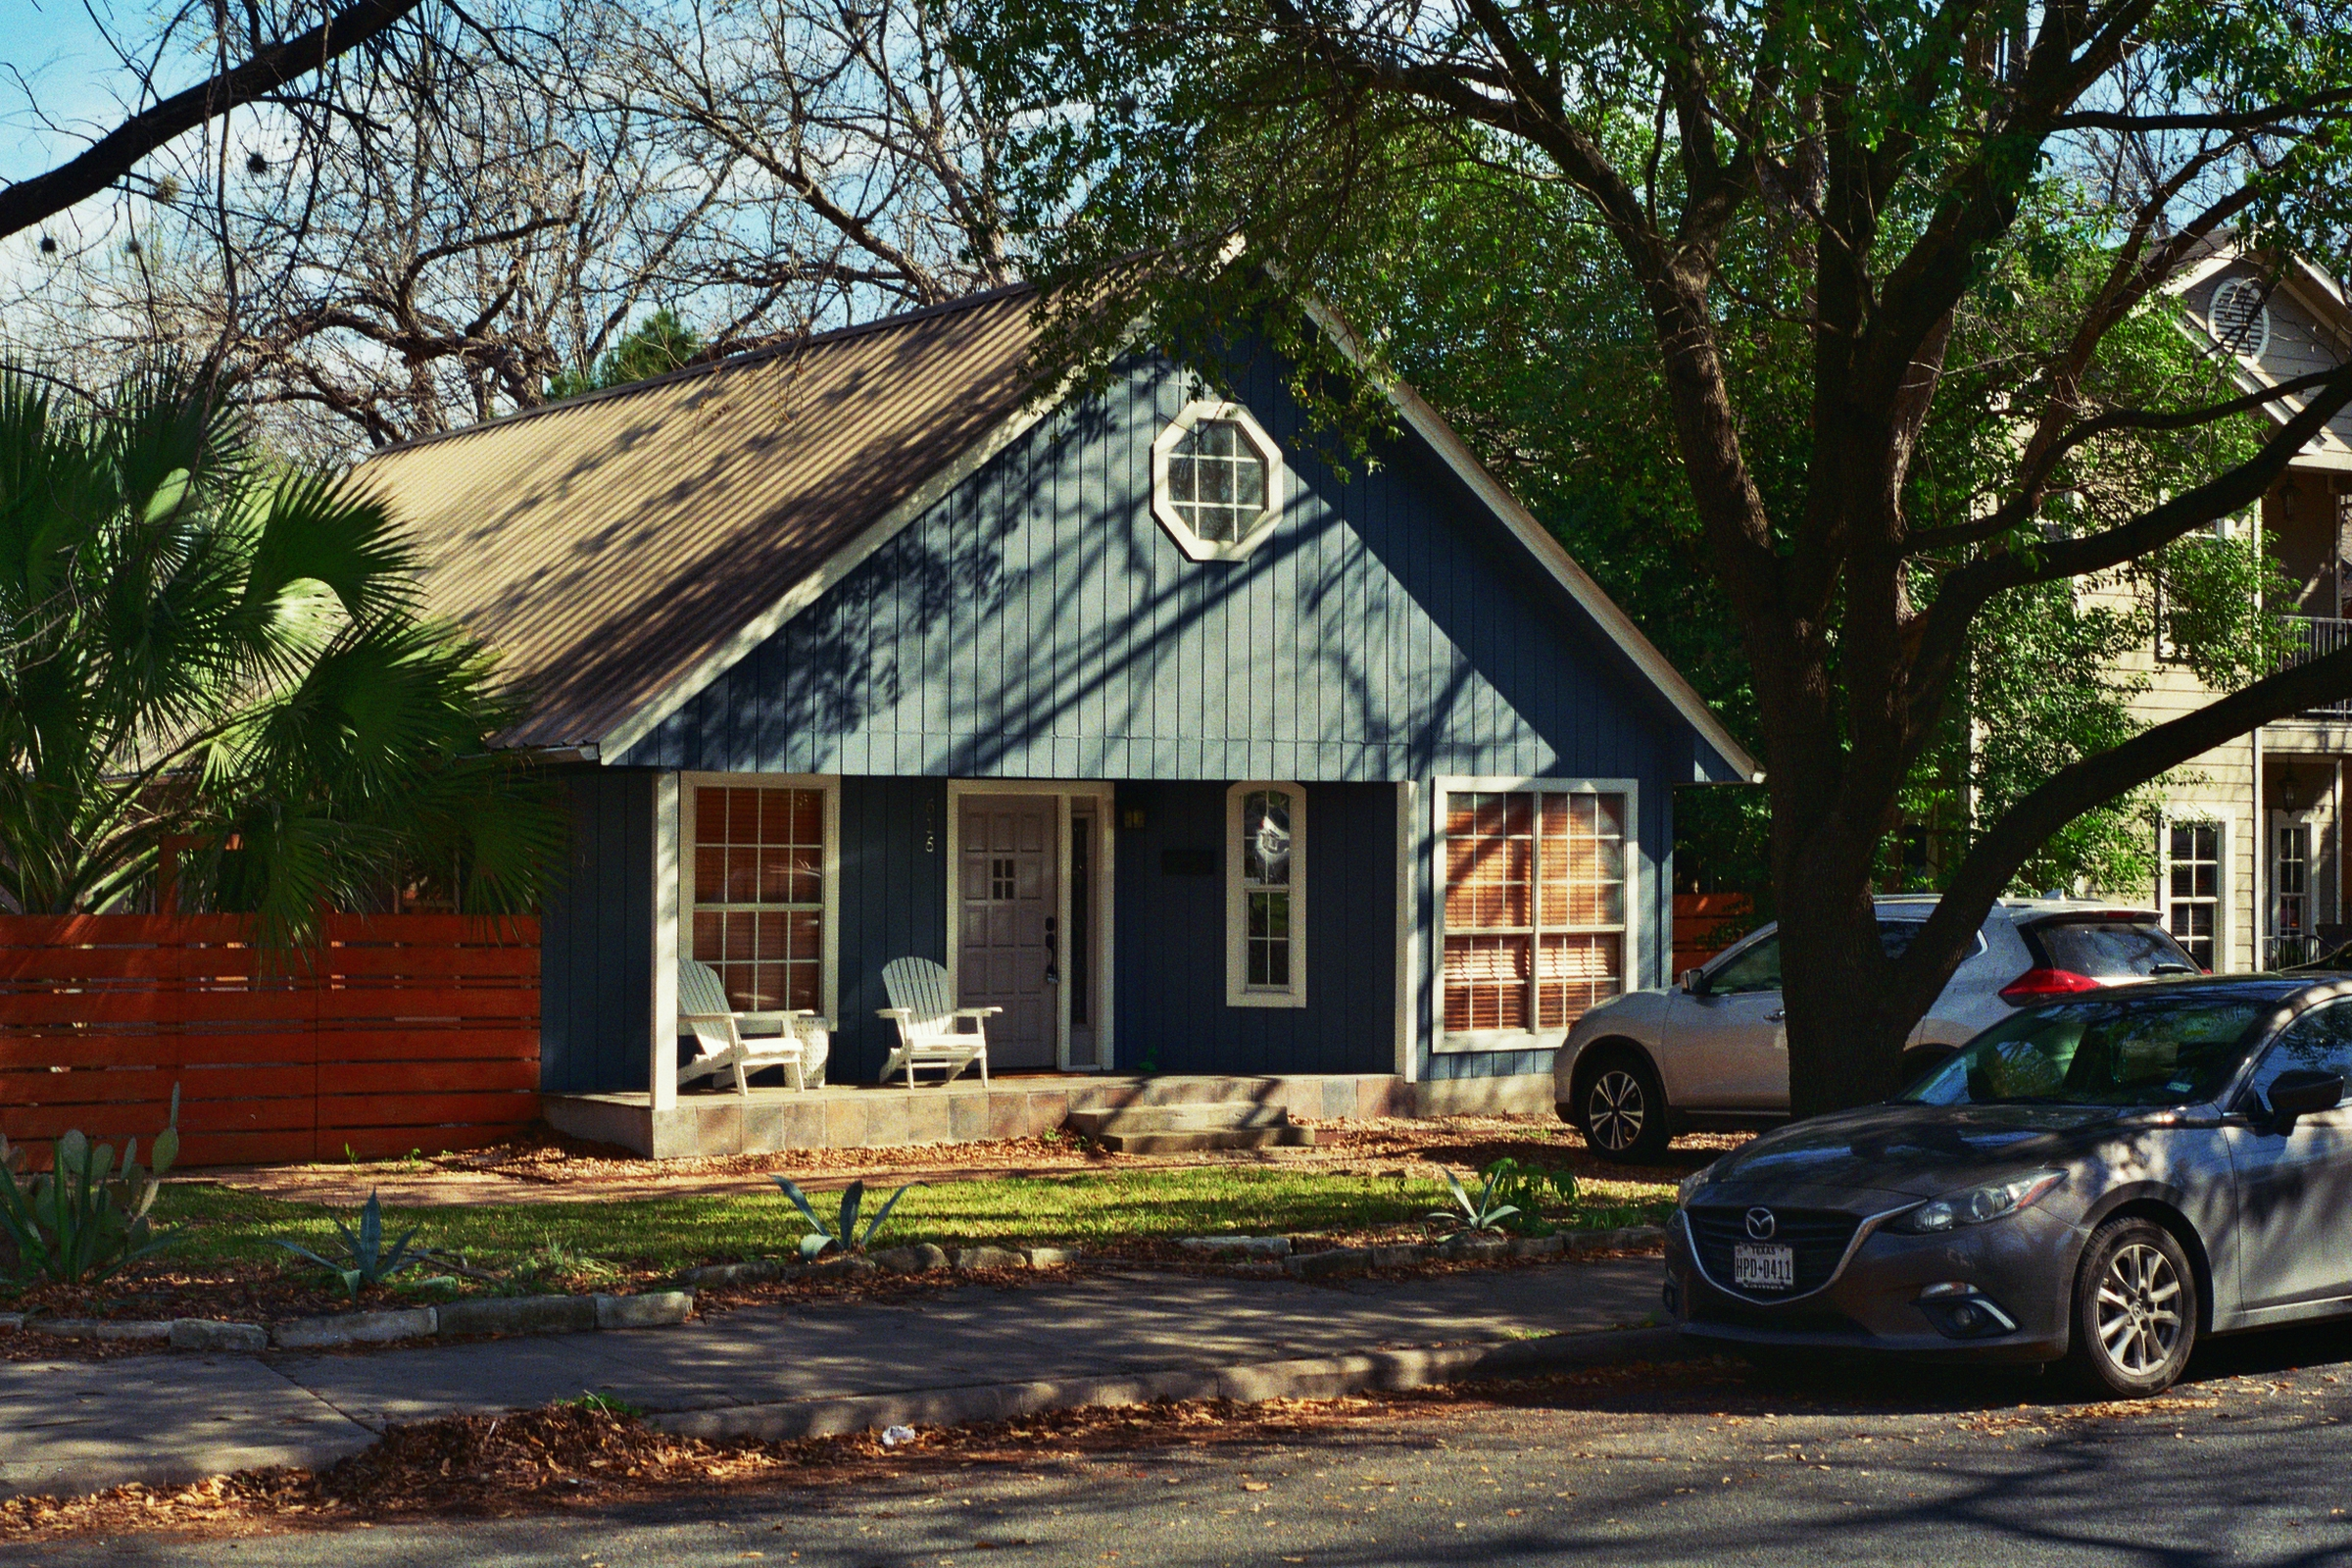 One of the many beautiful historic homes in Bouldin.  Austin, TX  Kodak Ultra Max 400. Pentax K1000. Fletcher Berryman 2019.